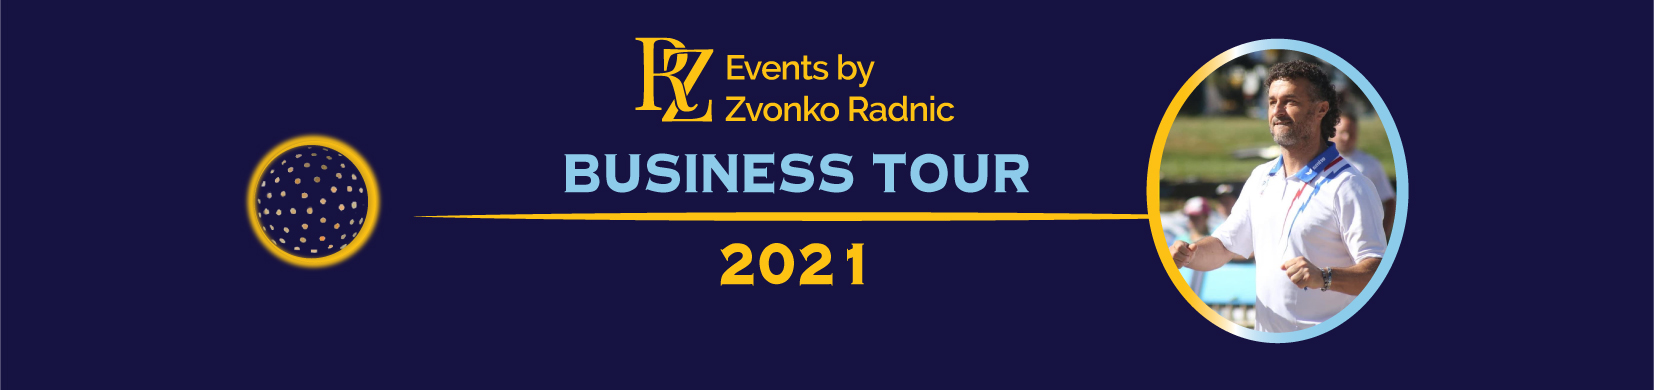 Titre RZ Business Tour site internet 1654x390